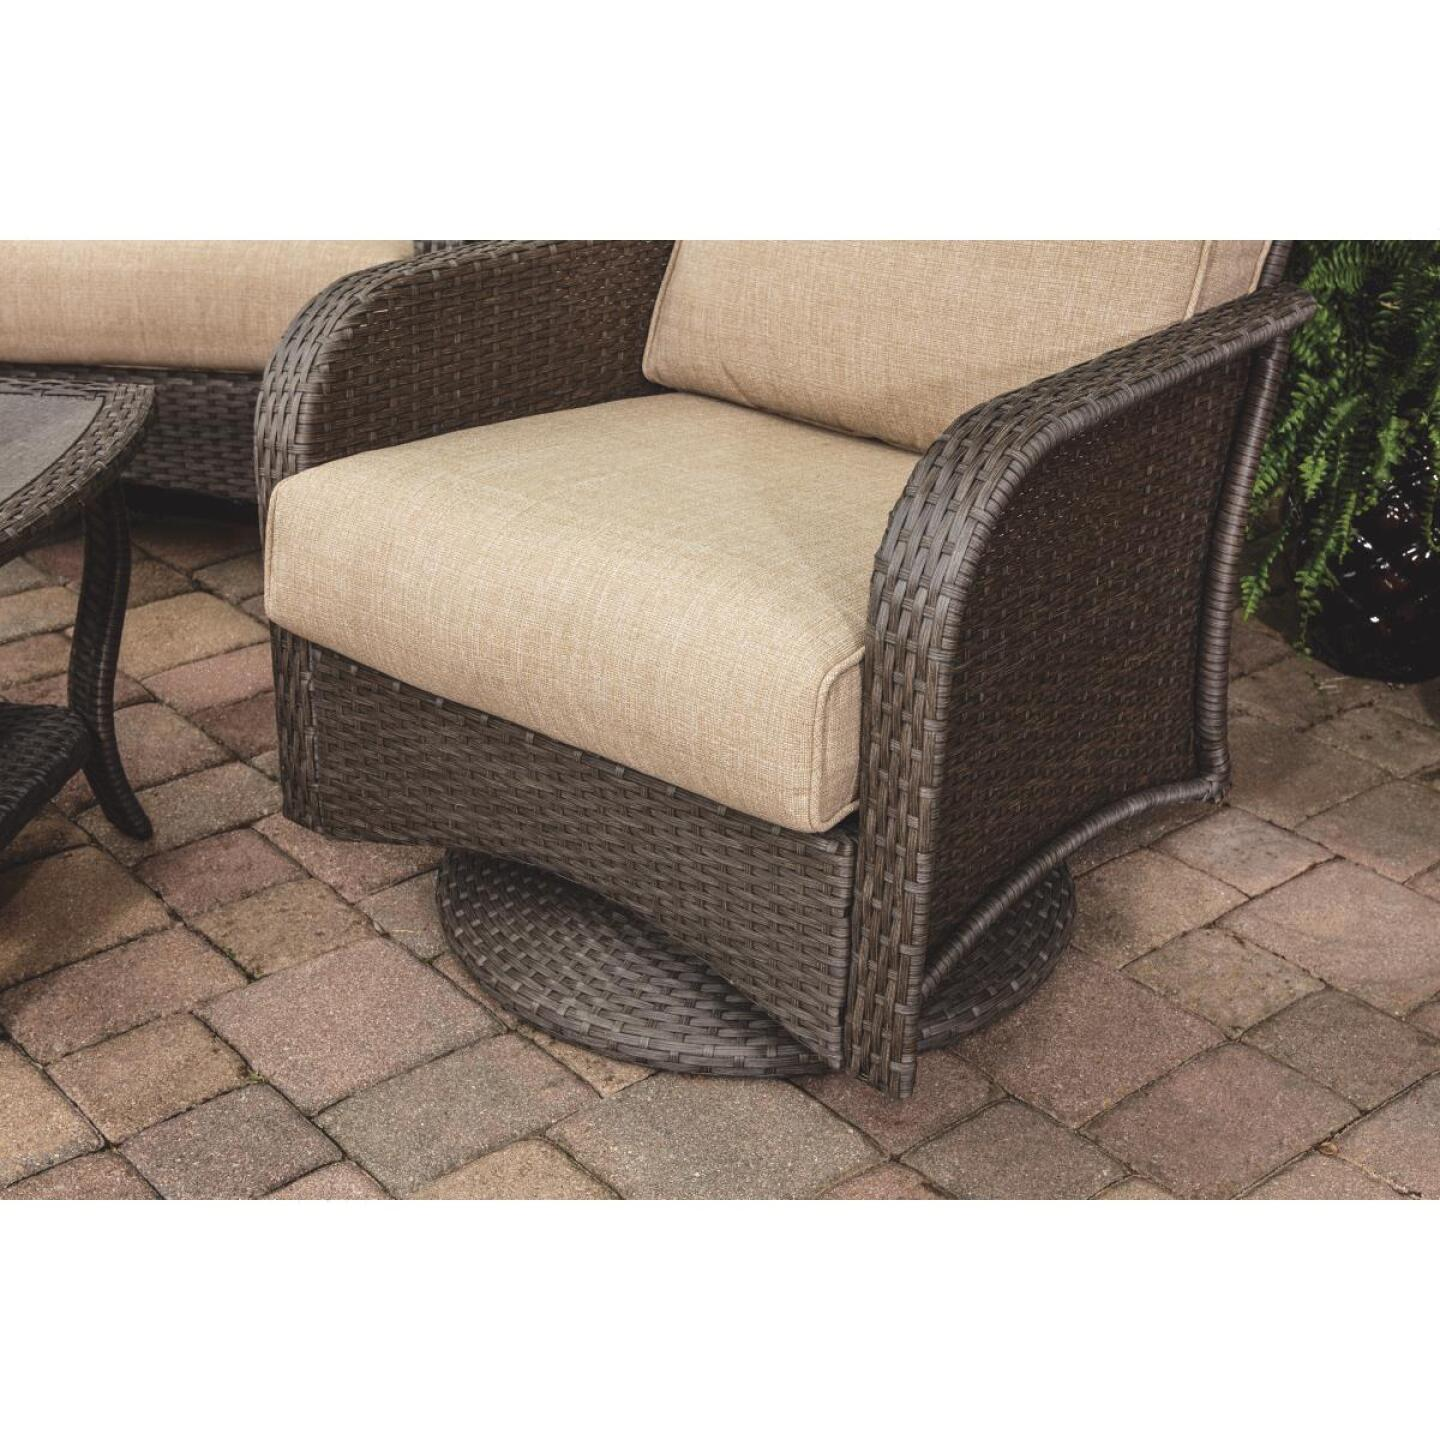 Pacific Casual Tiara Garden 2-Person Love Seat with Coffee Table Image 12